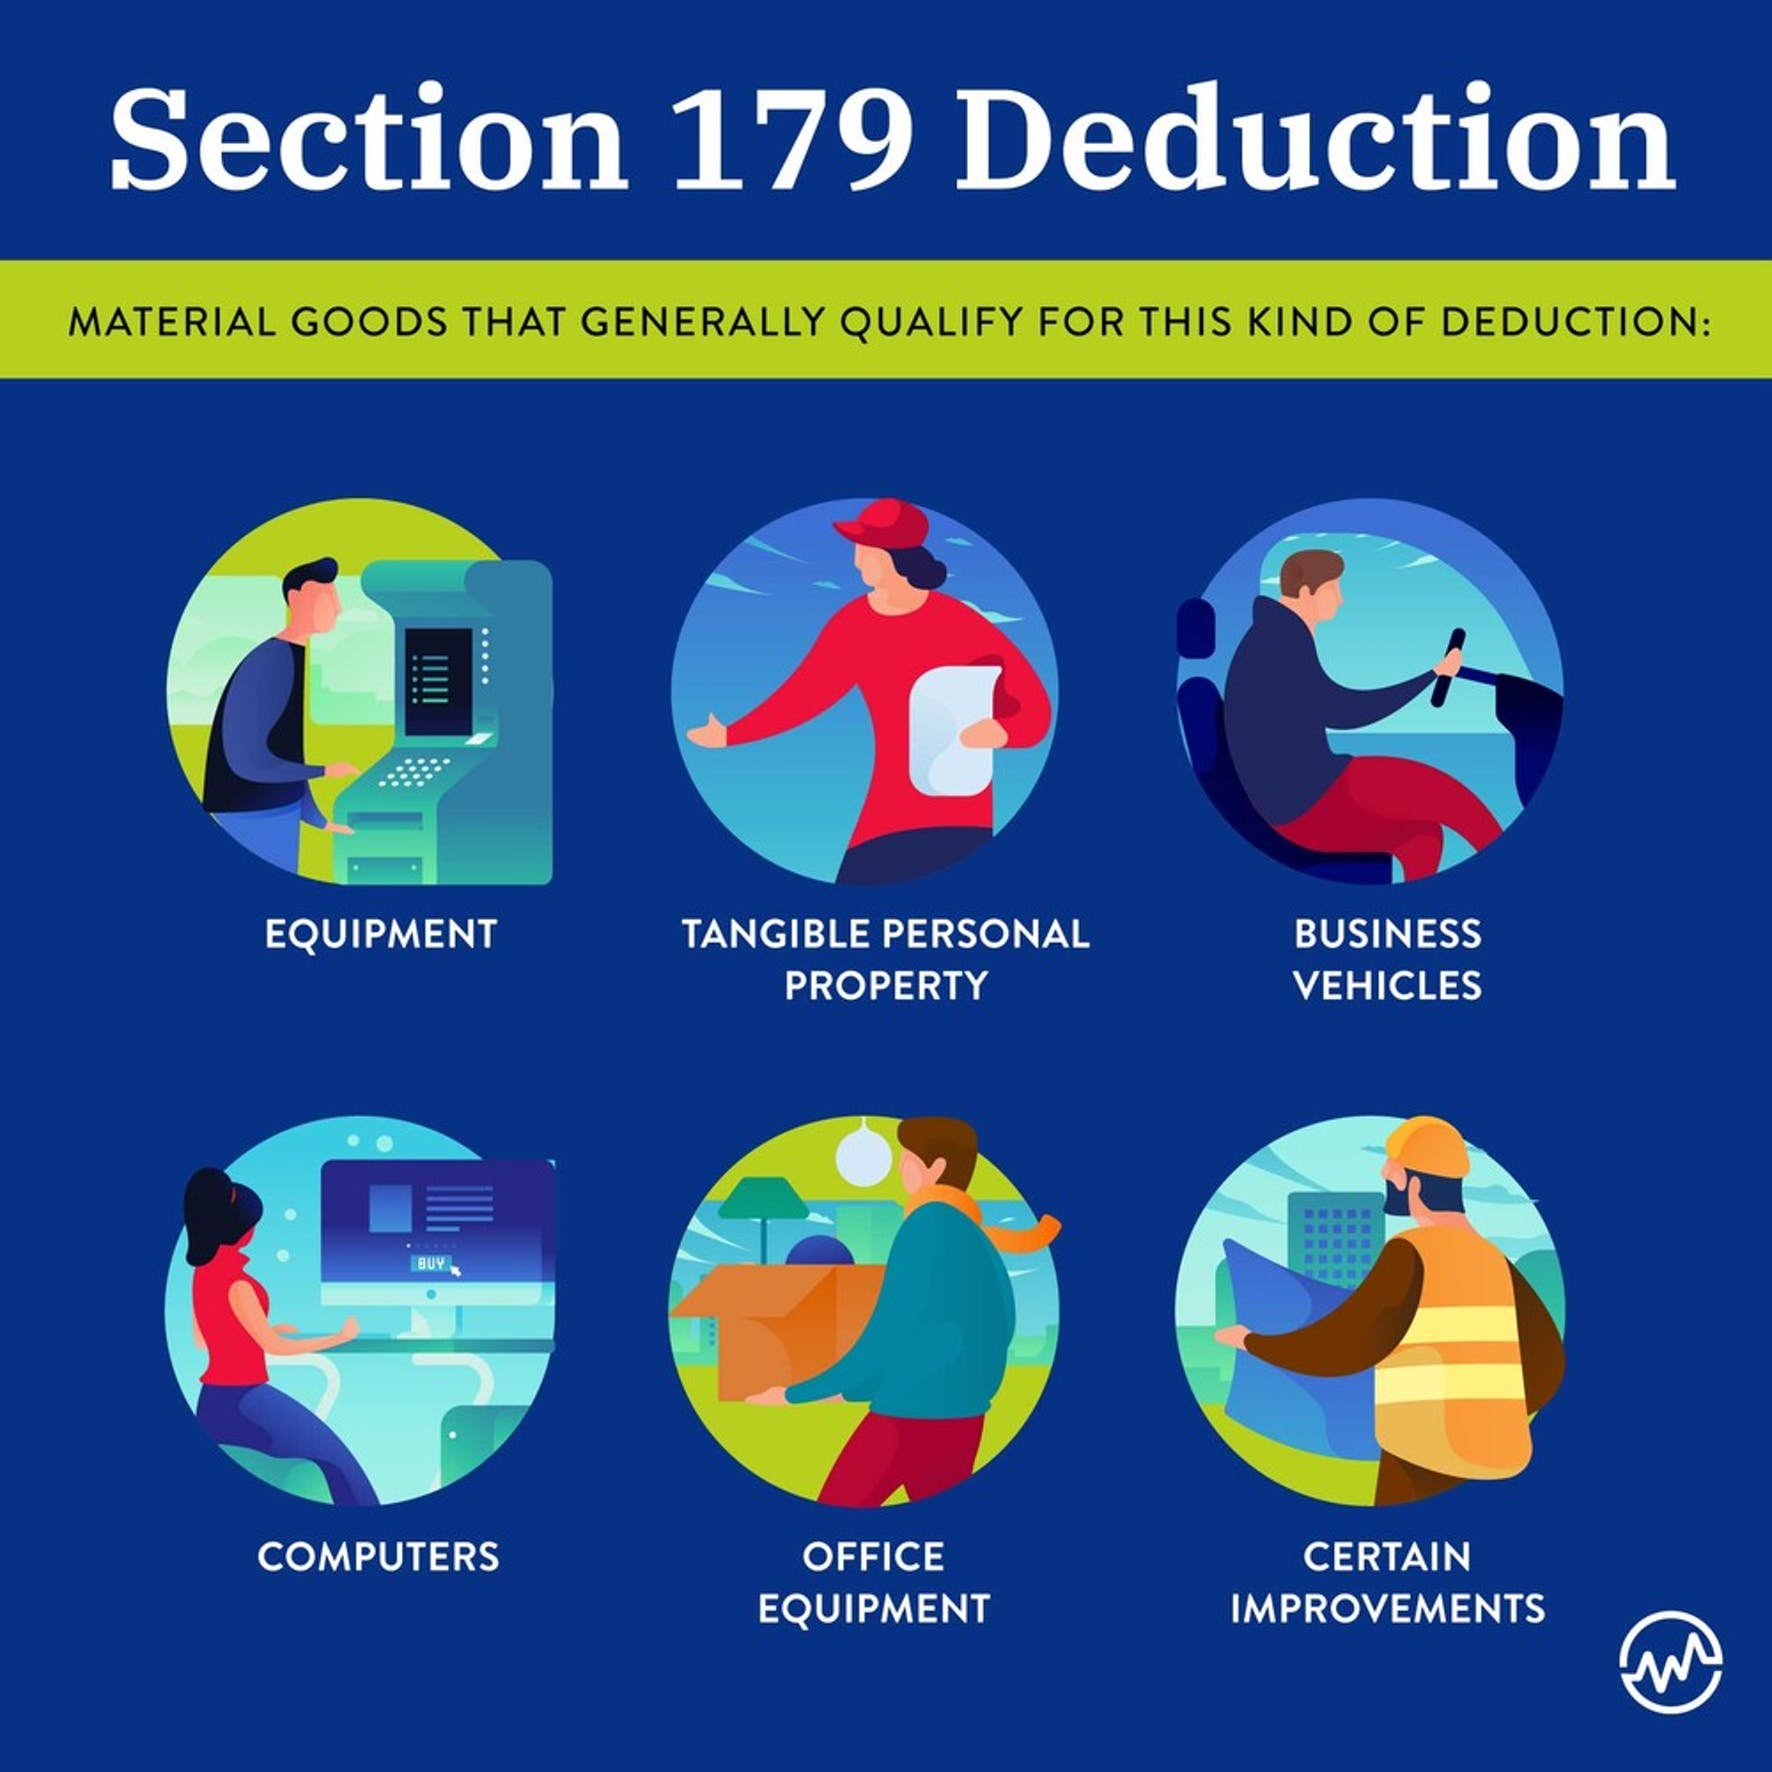 Tax strategies: Section 179 deduction that helps save money on taxes